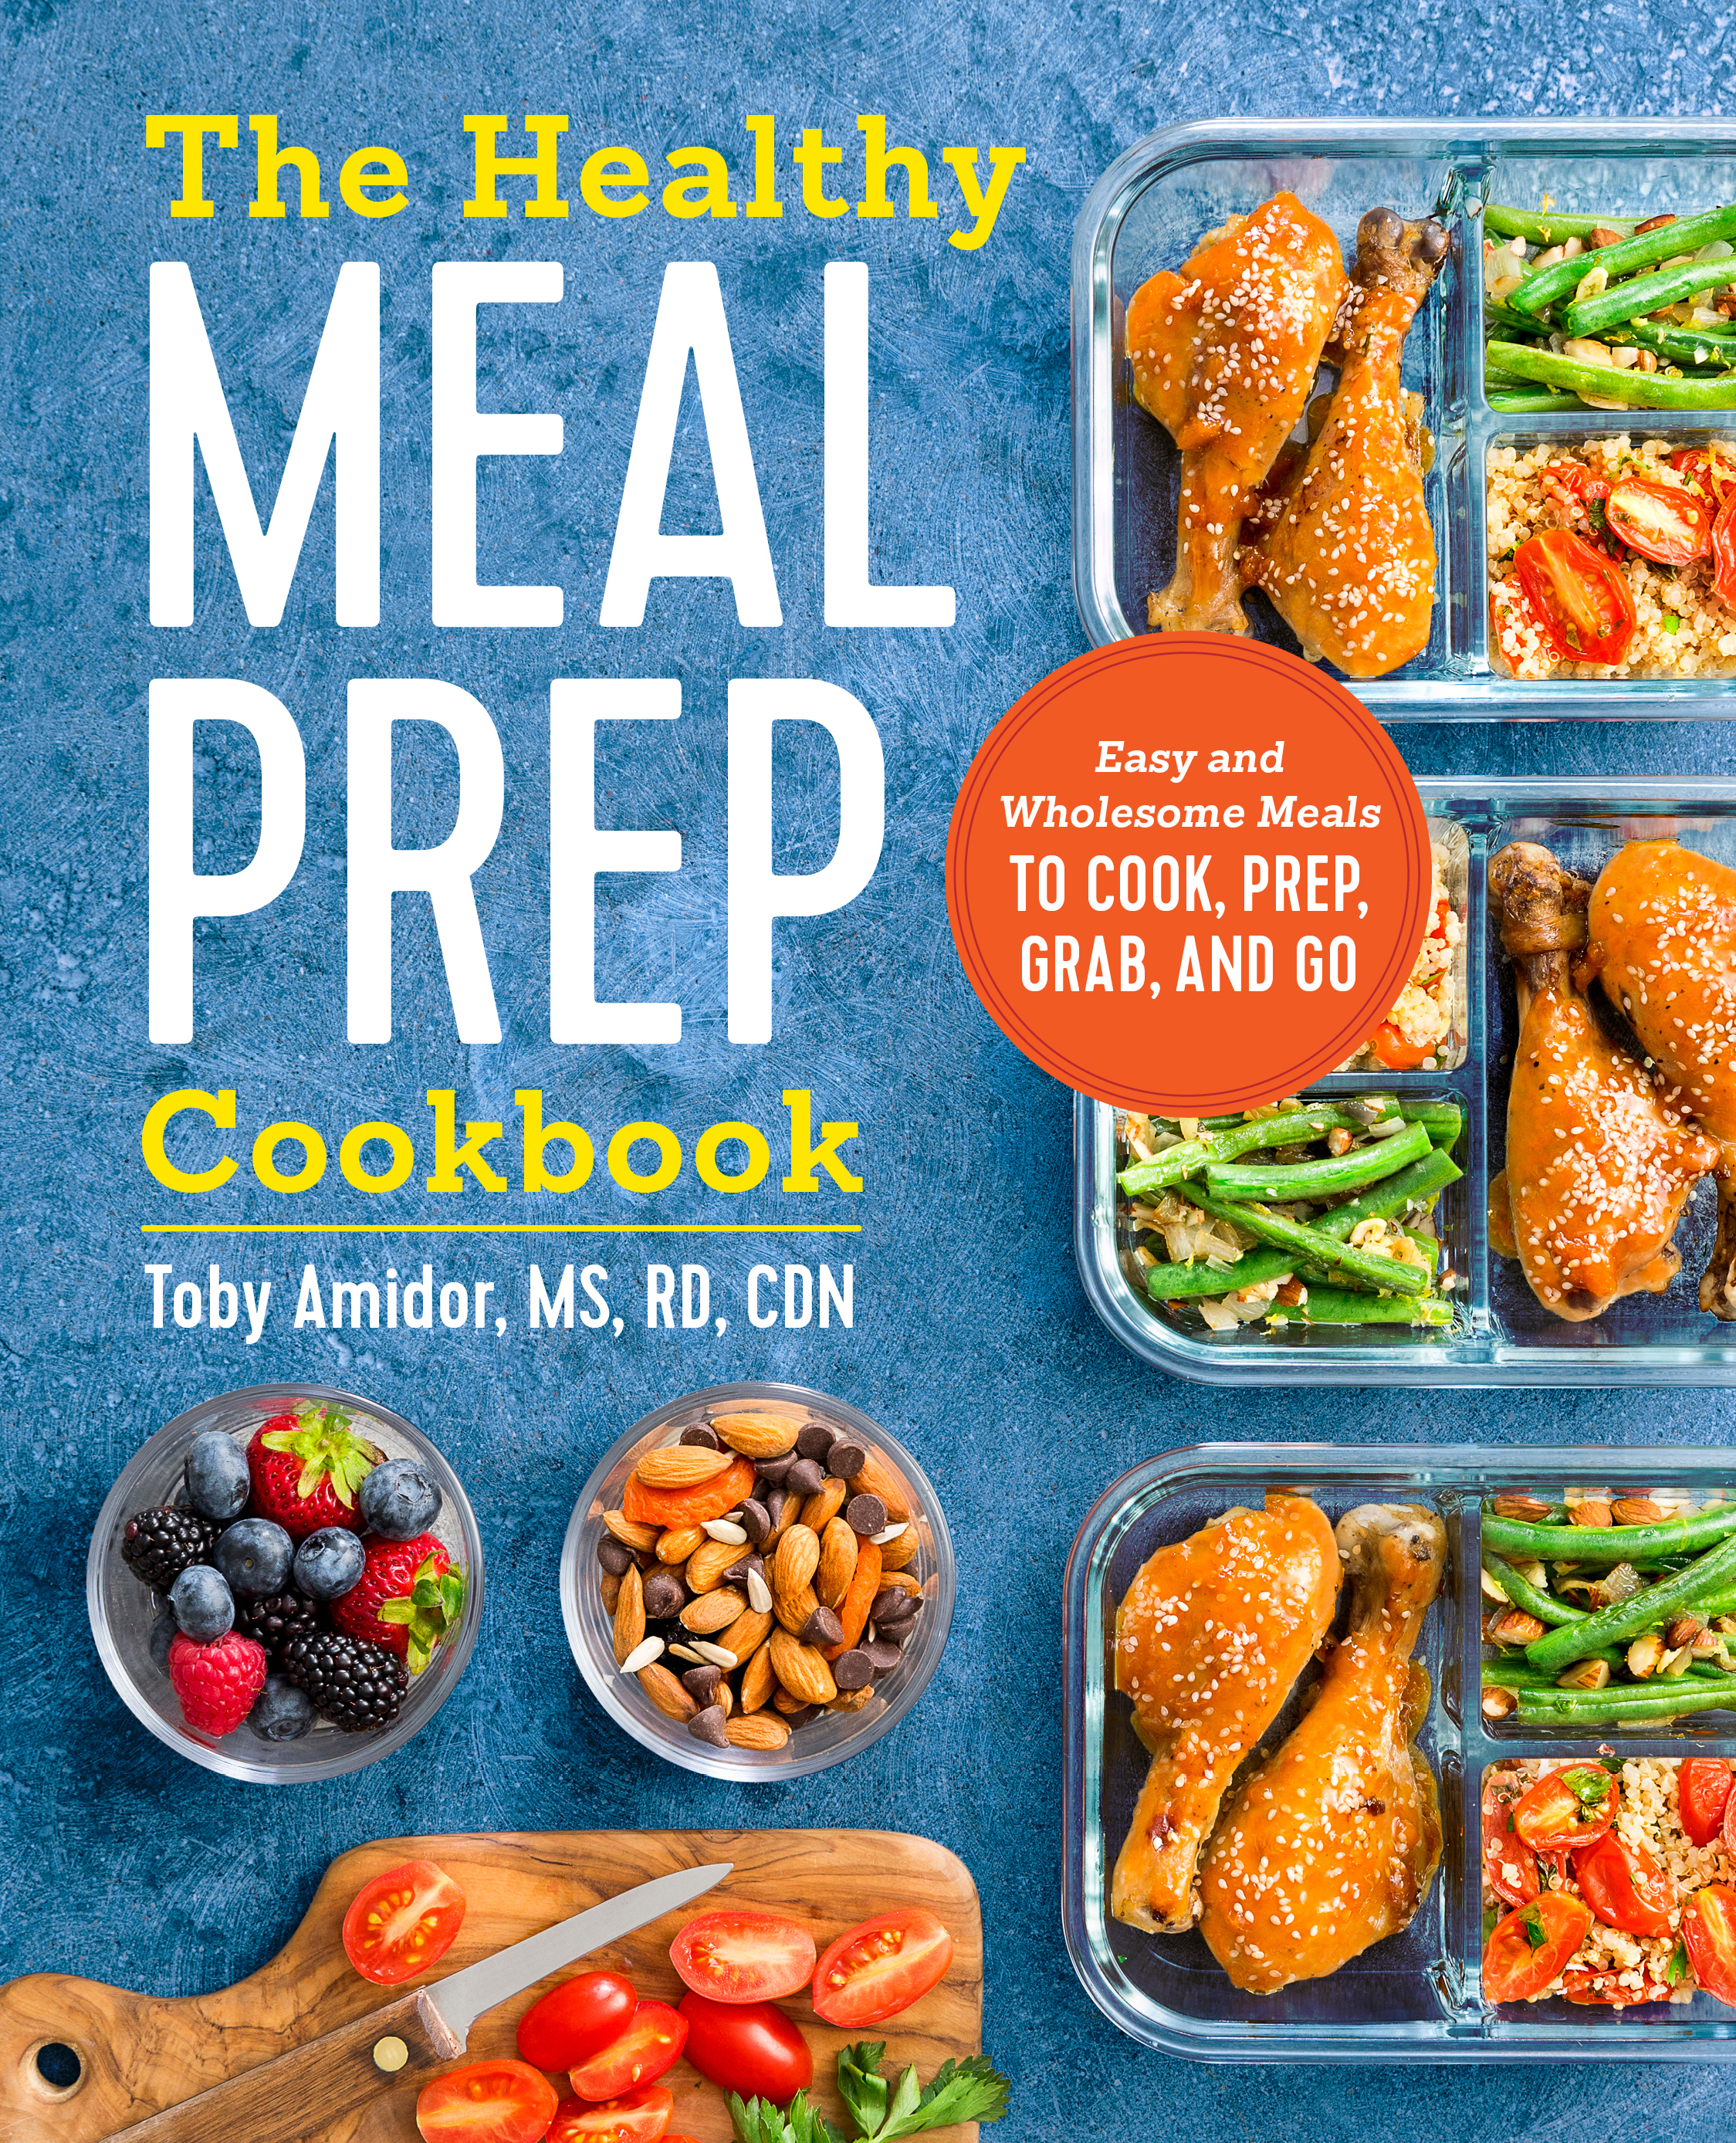 Win a Copy of The Healthy Meal Prep Cookbook